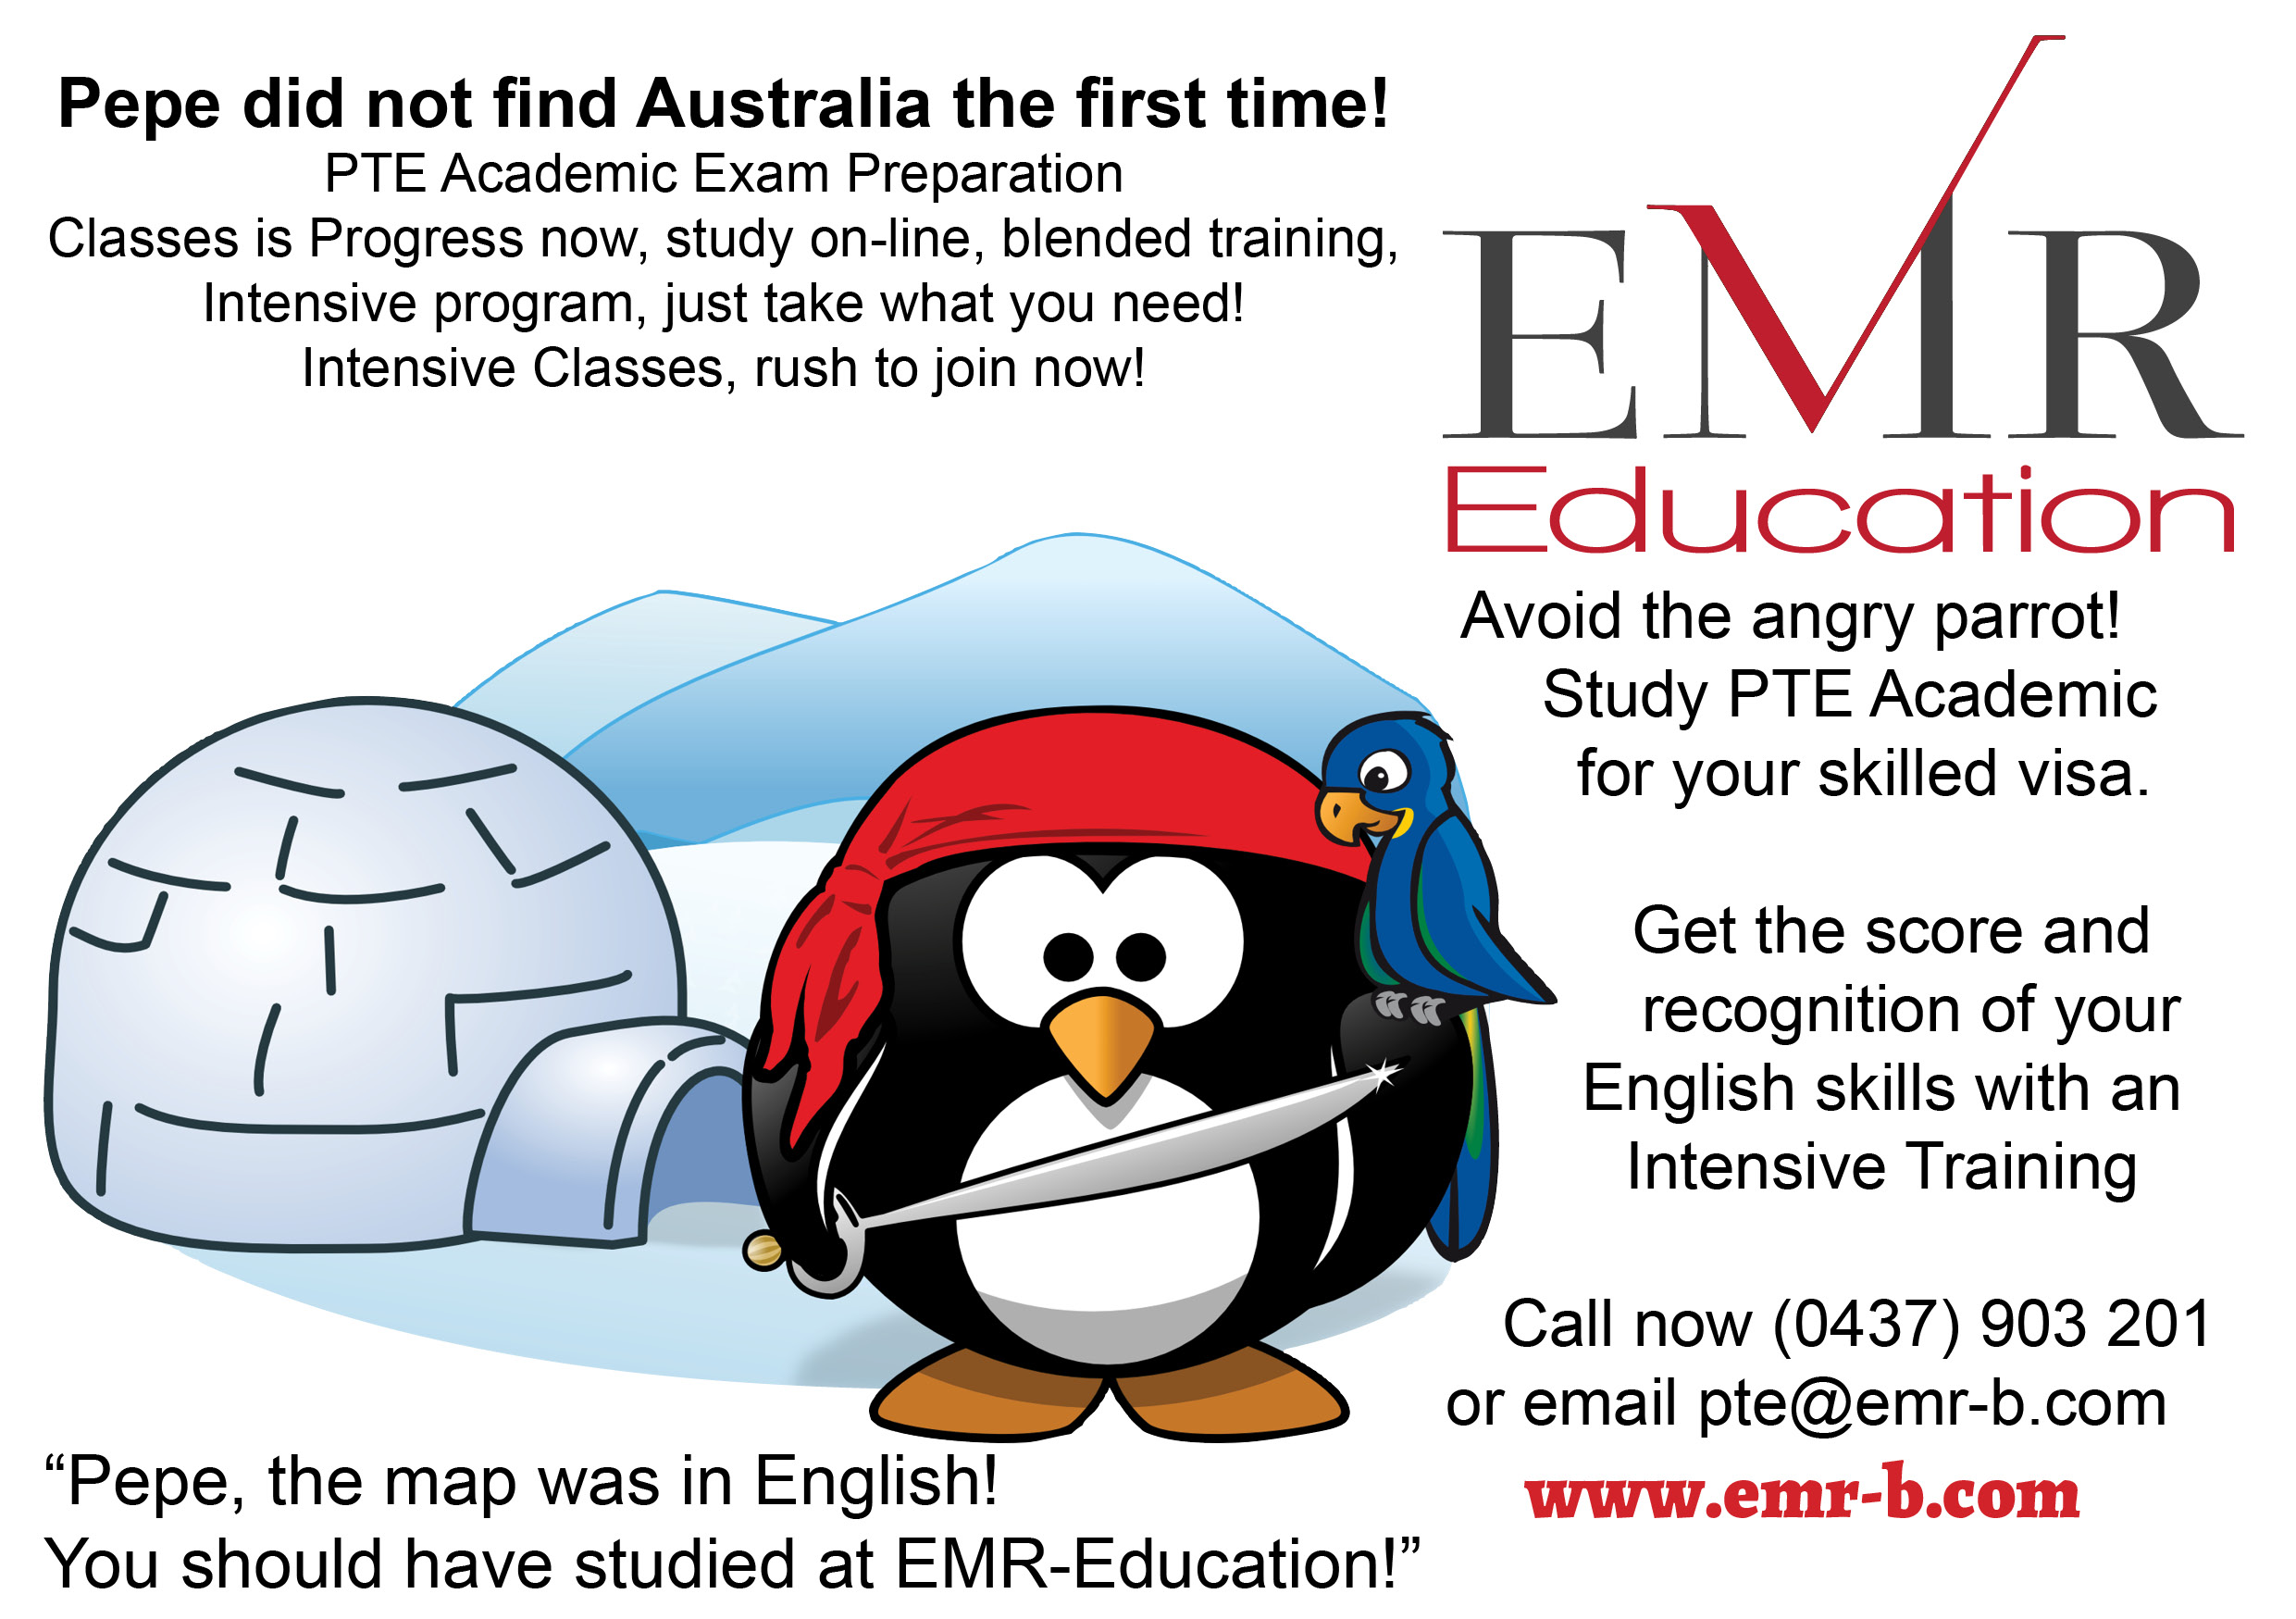 Pepe Lost his way to Australia, take PTE Training @EMR